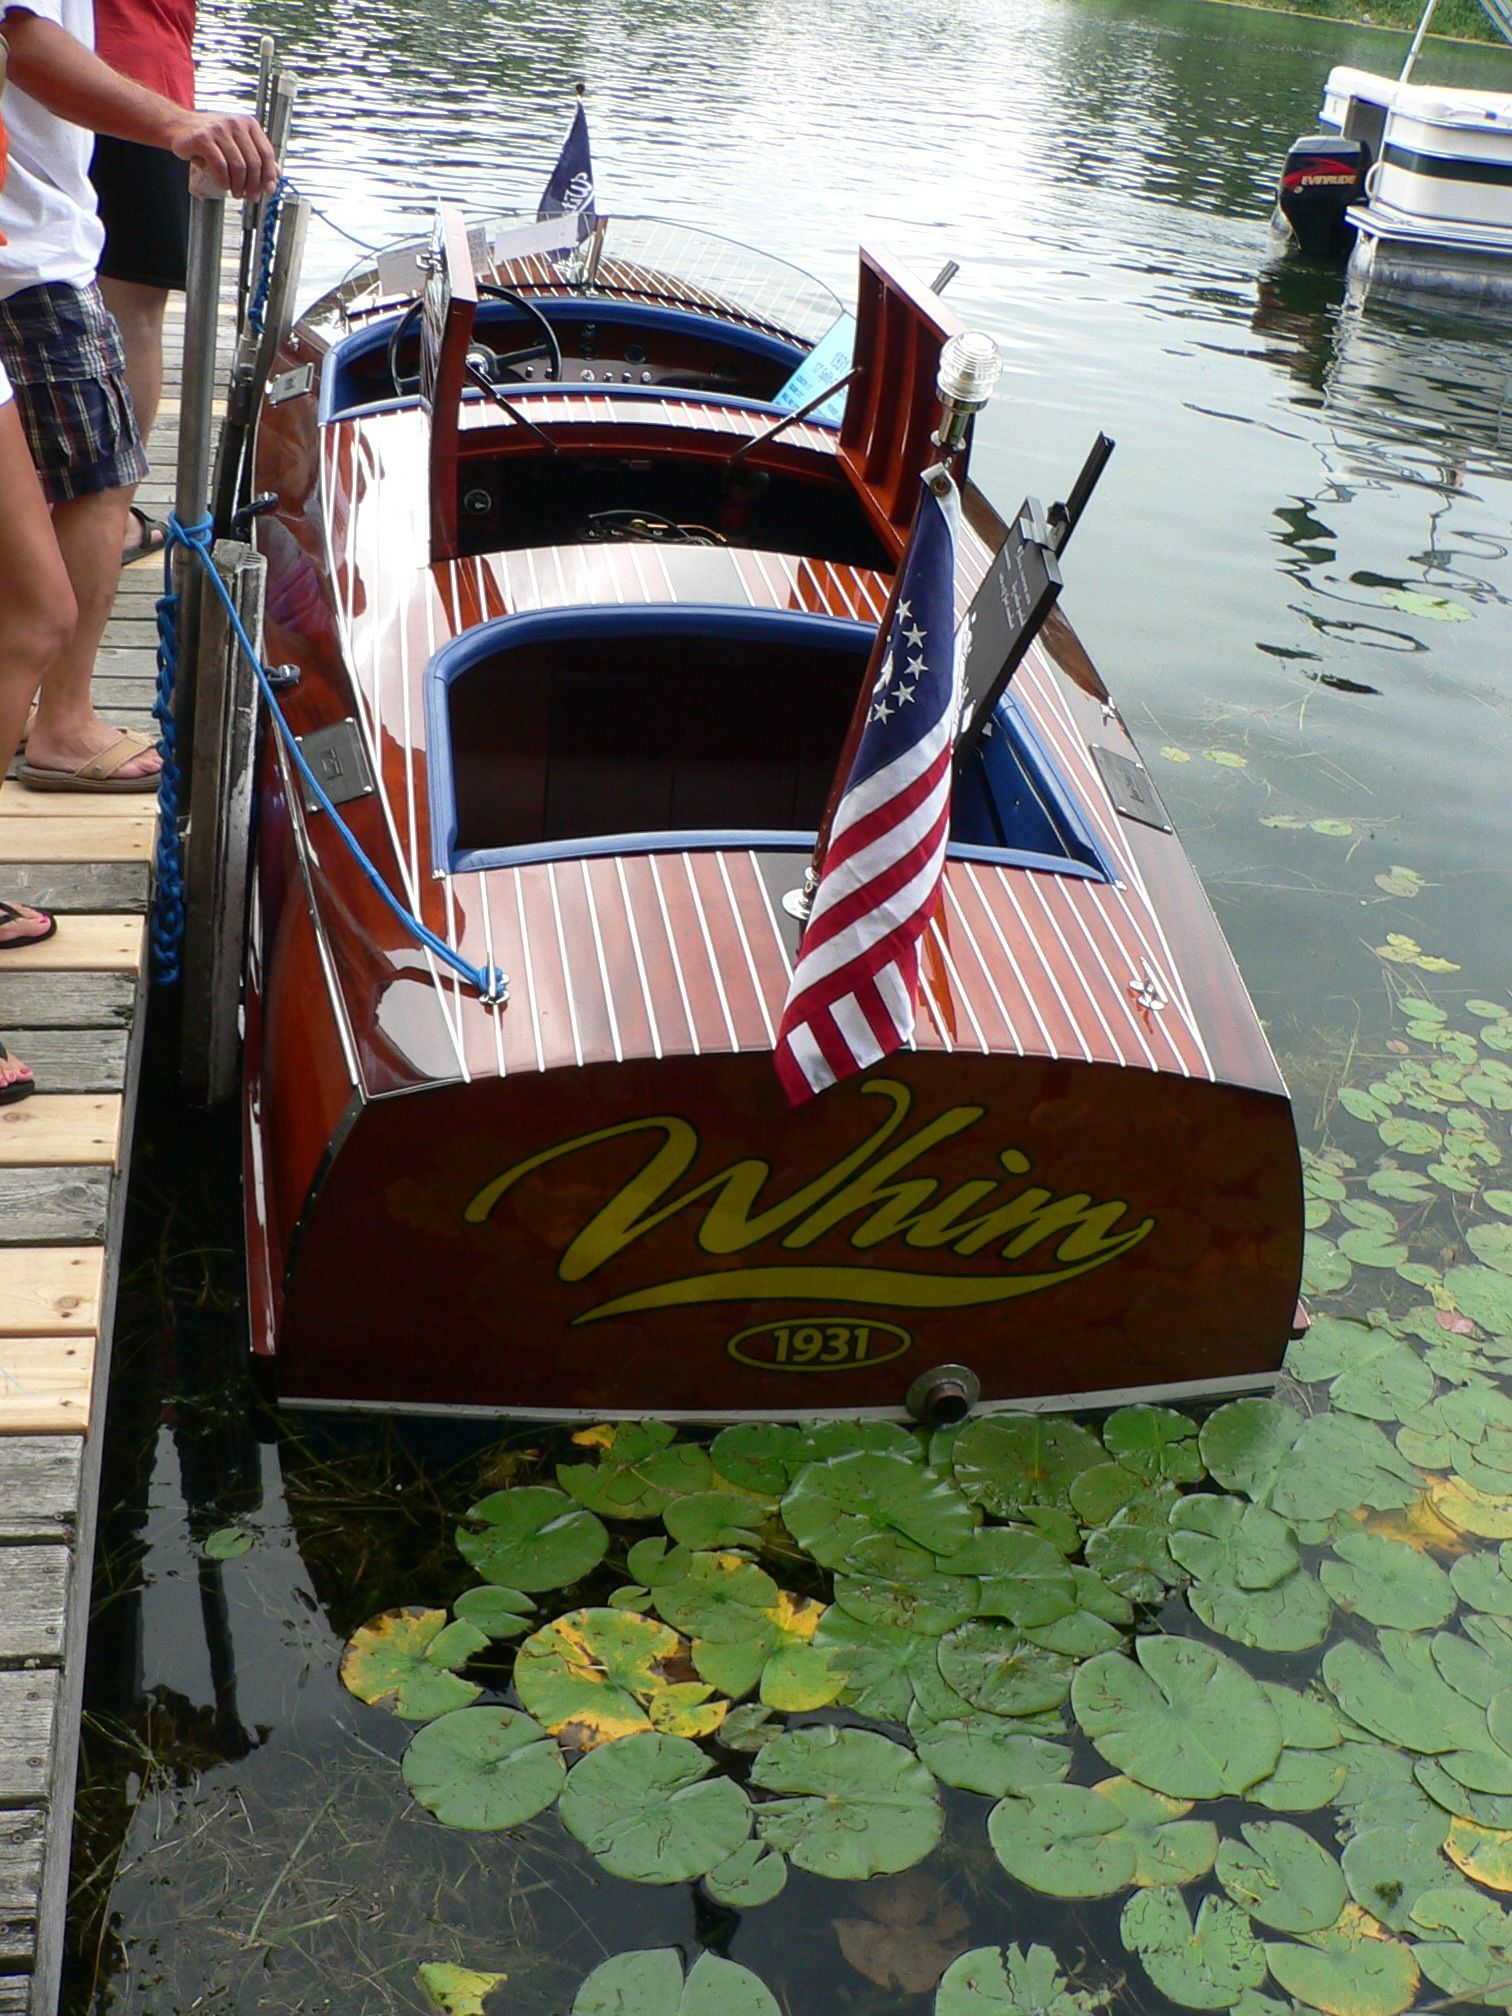 10+ Chris craft wooden boats for sale mn ideas in 2021